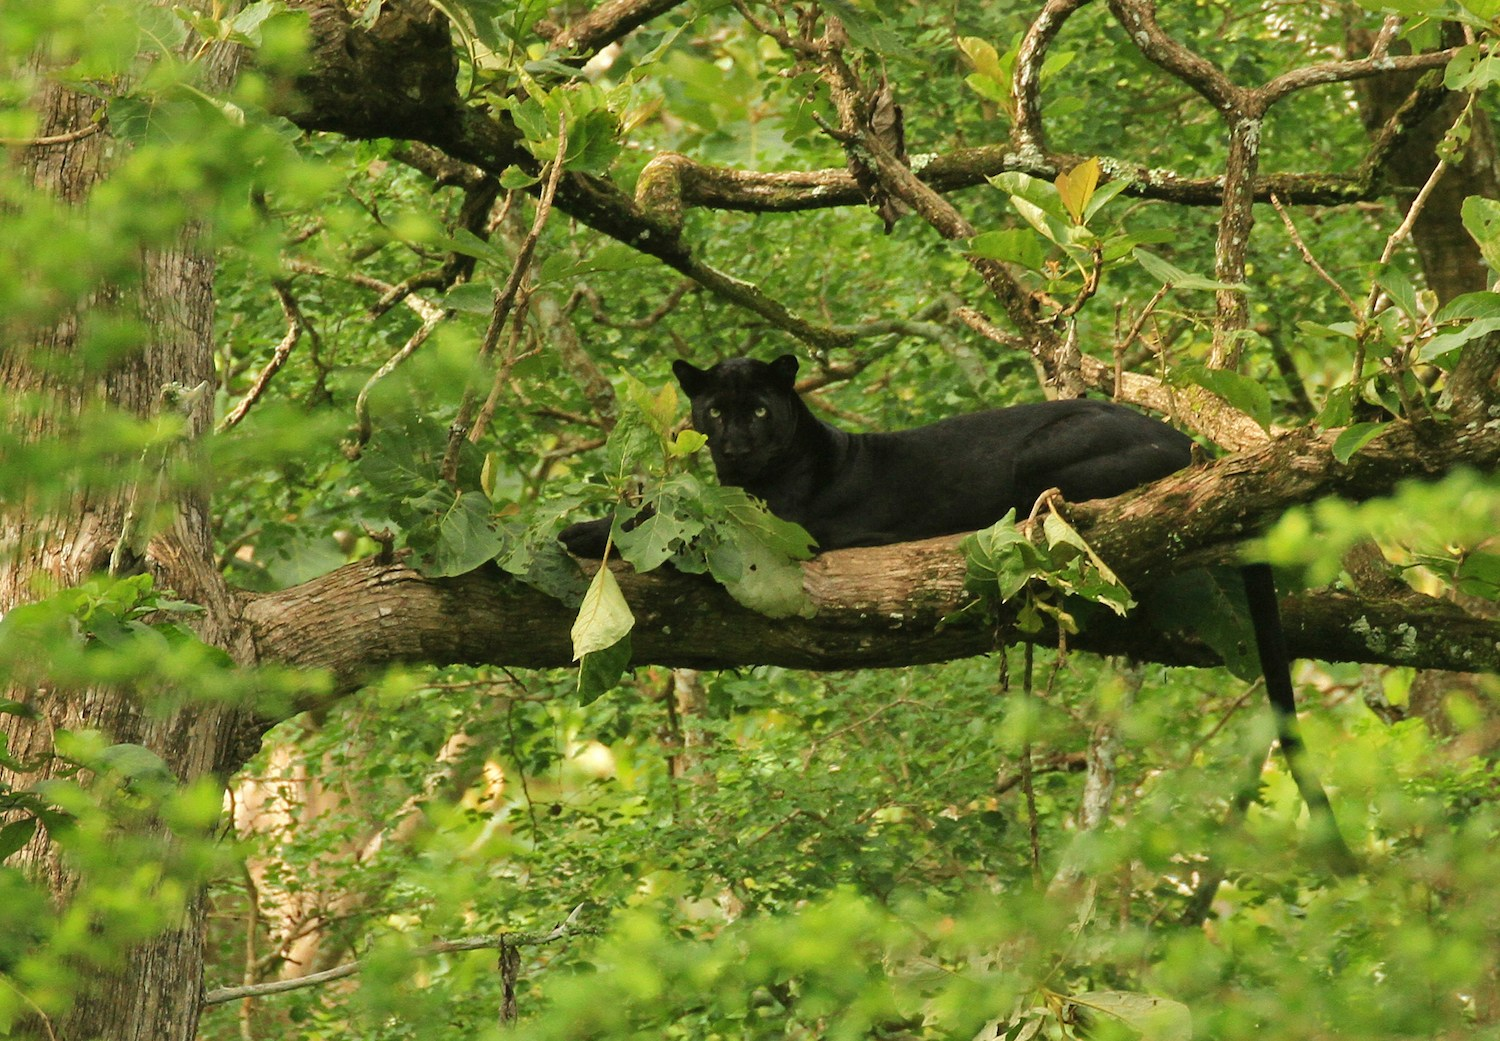 "Everyone clamours for a glimpse of 'Blackie', as guides and regular visitors affectionately refer to the black panther. So rare is a sighting, that its earned the moniker ""ghost of the forest"". 